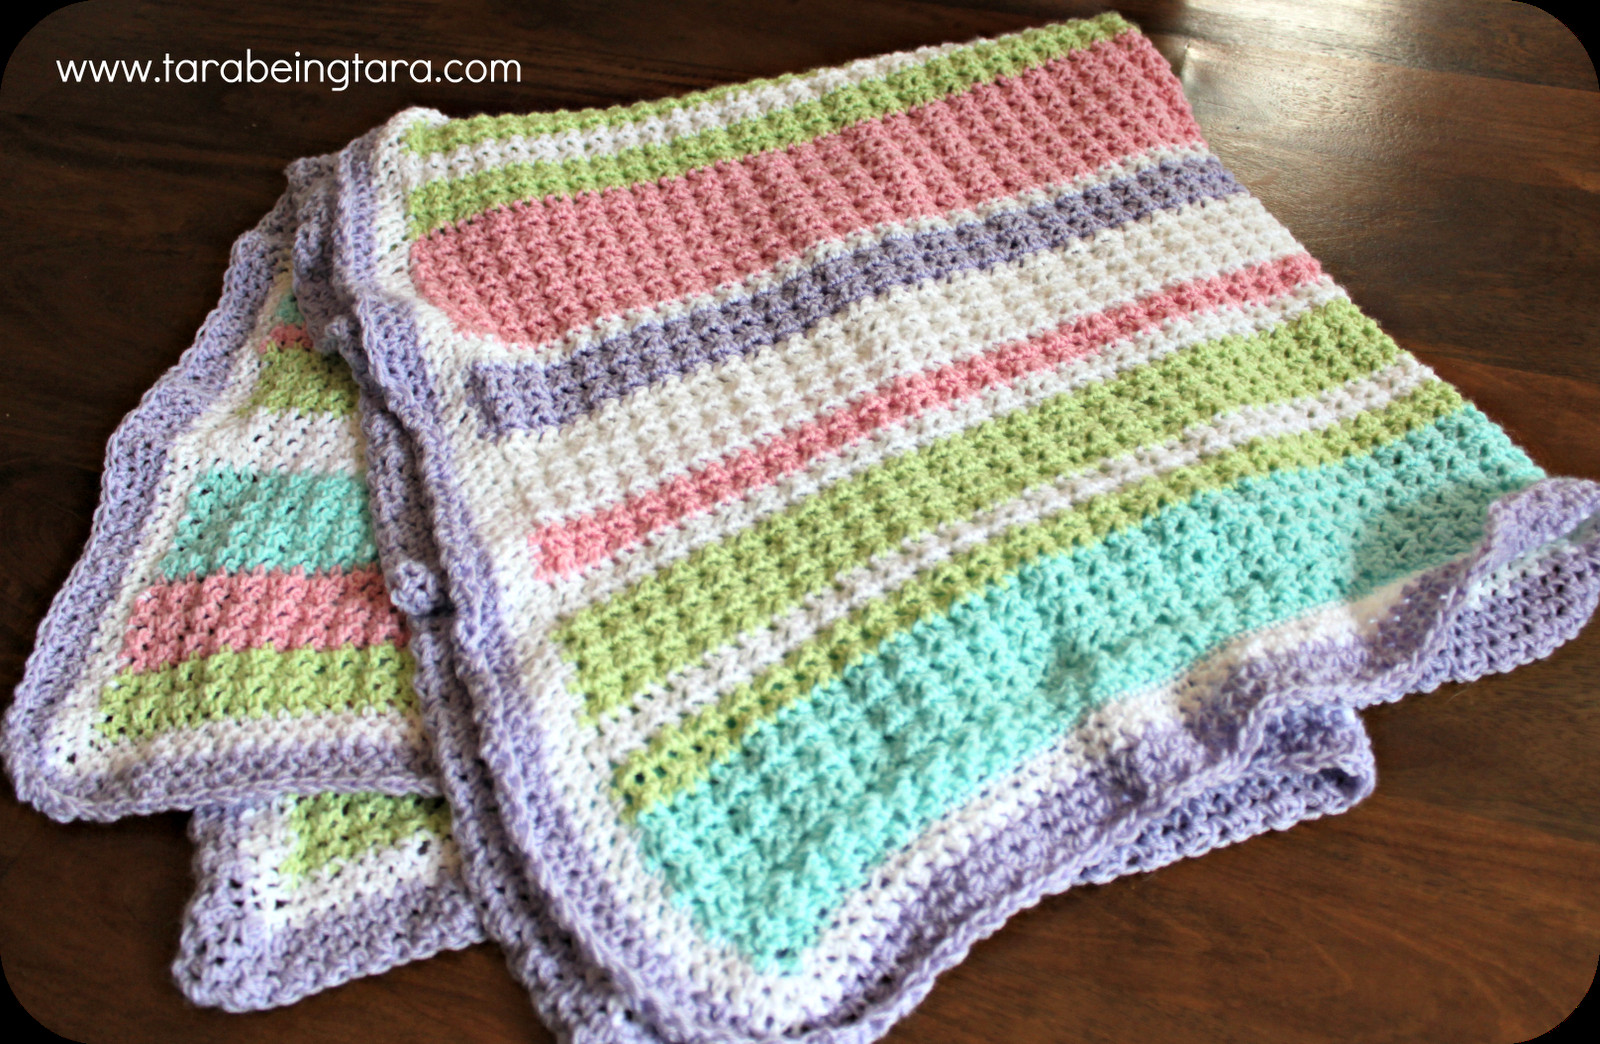 New Tara Being Tara A Very Crocheted Blanket Single Stitch Crochet Blanket Of Marvelous 48 Images Single Stitch Crochet Blanket